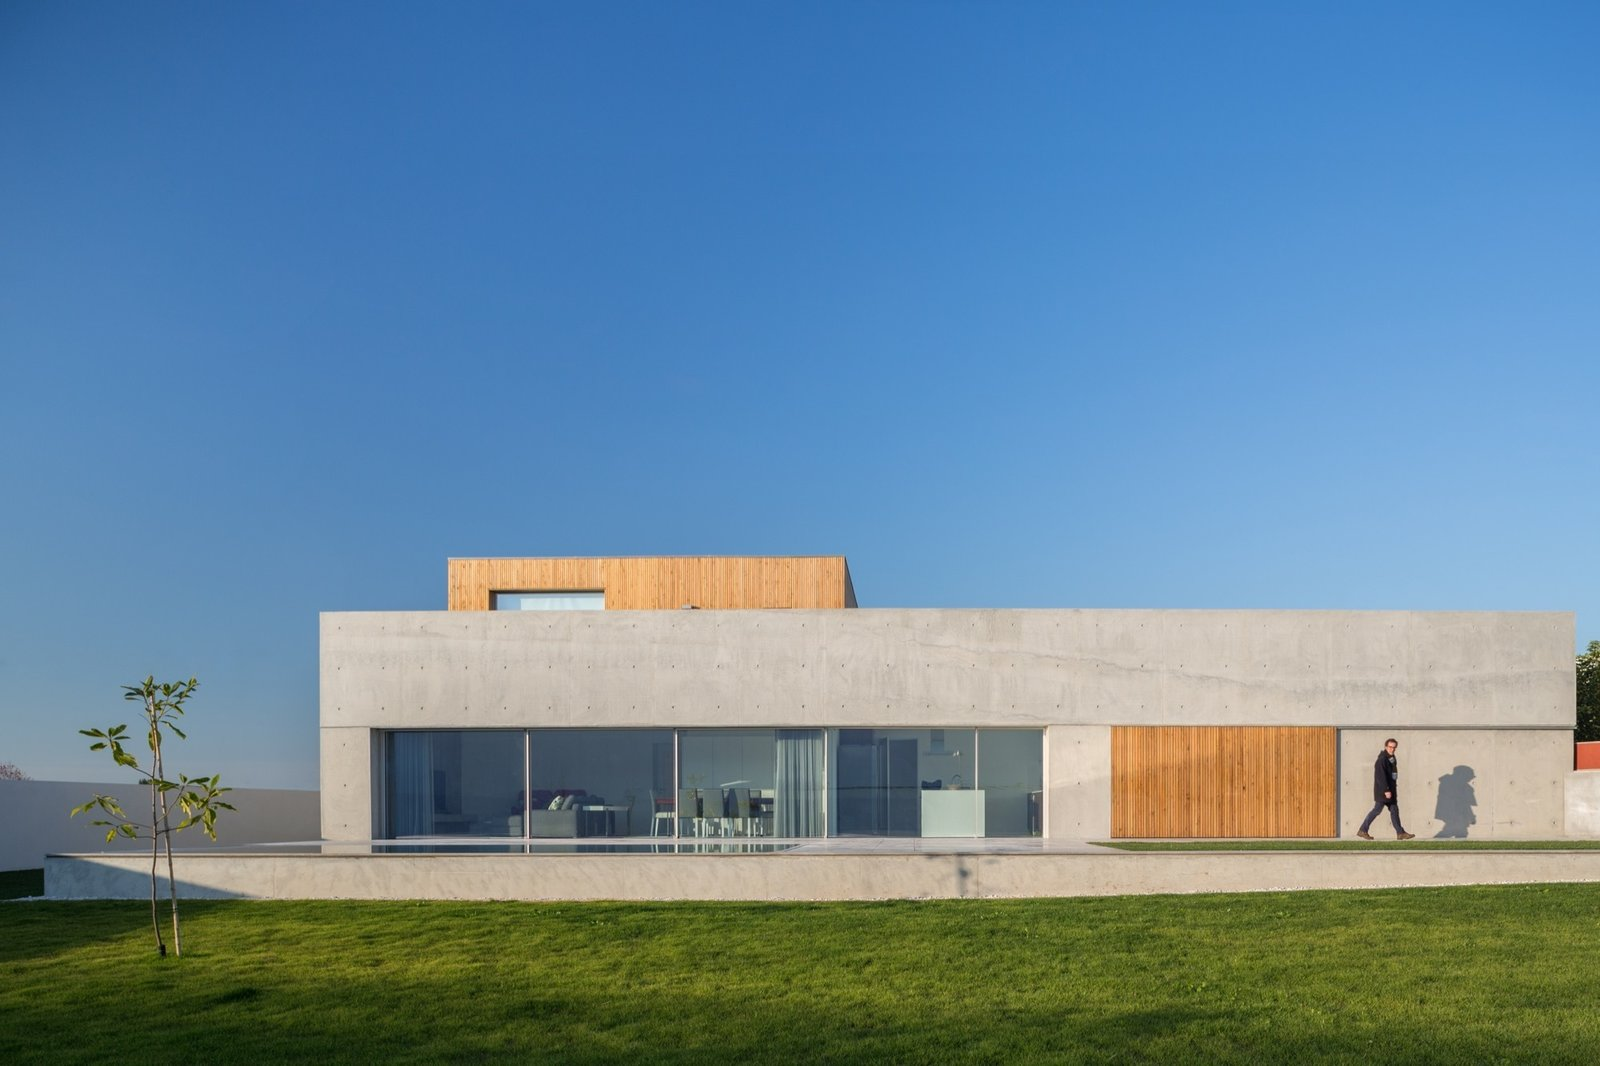 House in Avanca by Its. Ivo Tavares Studio - architectural photographer